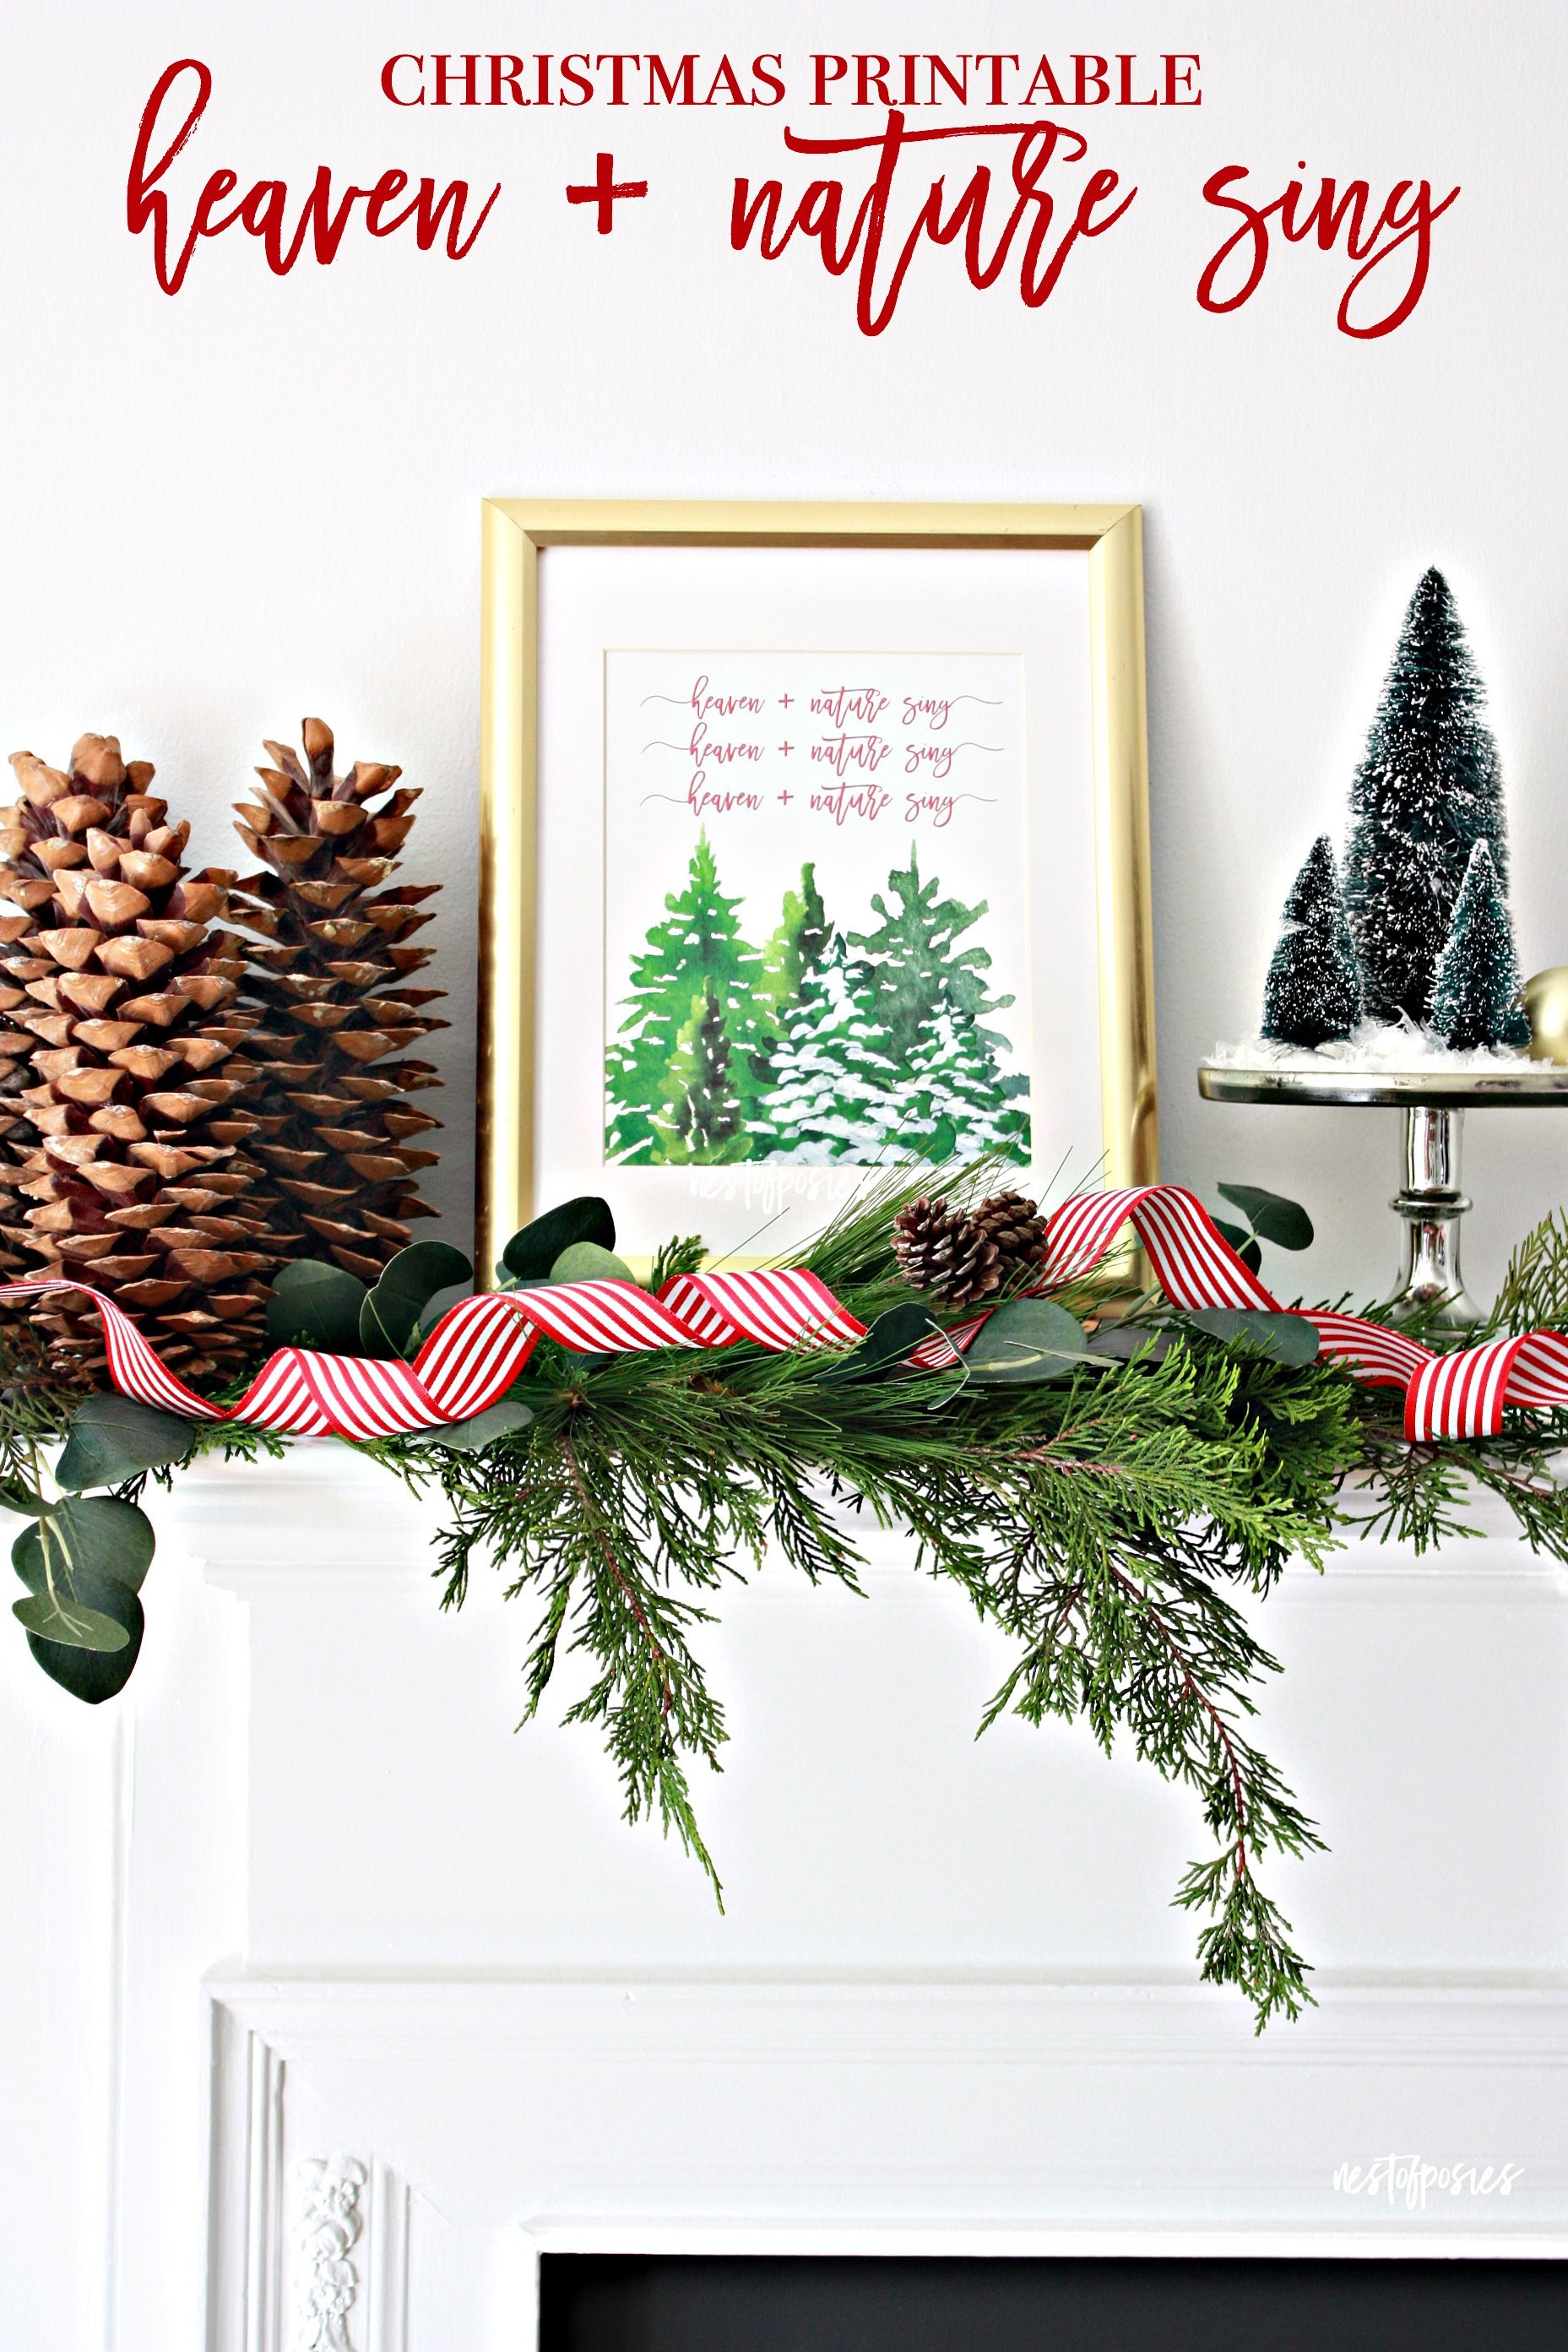 Free Christmas Printables That'll Look Great In Your Home | Eighteen25 - Free Christmas Printables